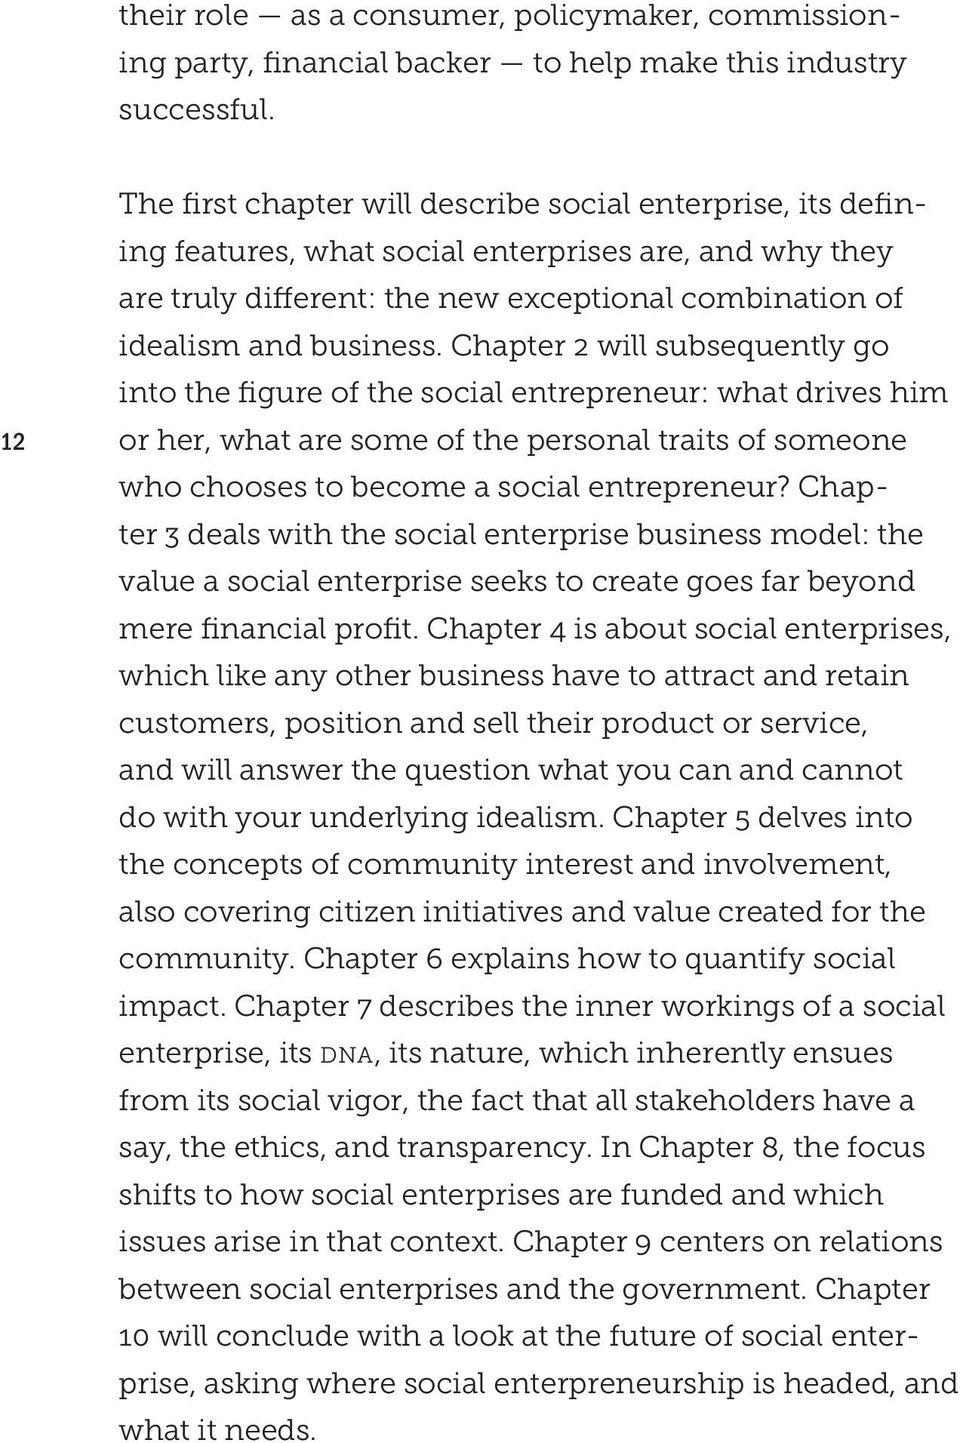 Chapter 2 will subsequently go into the figure of the social entrepreneur: what drives him or her, what are some of the personal traits of someone who chooses to become a social entrepreneur?